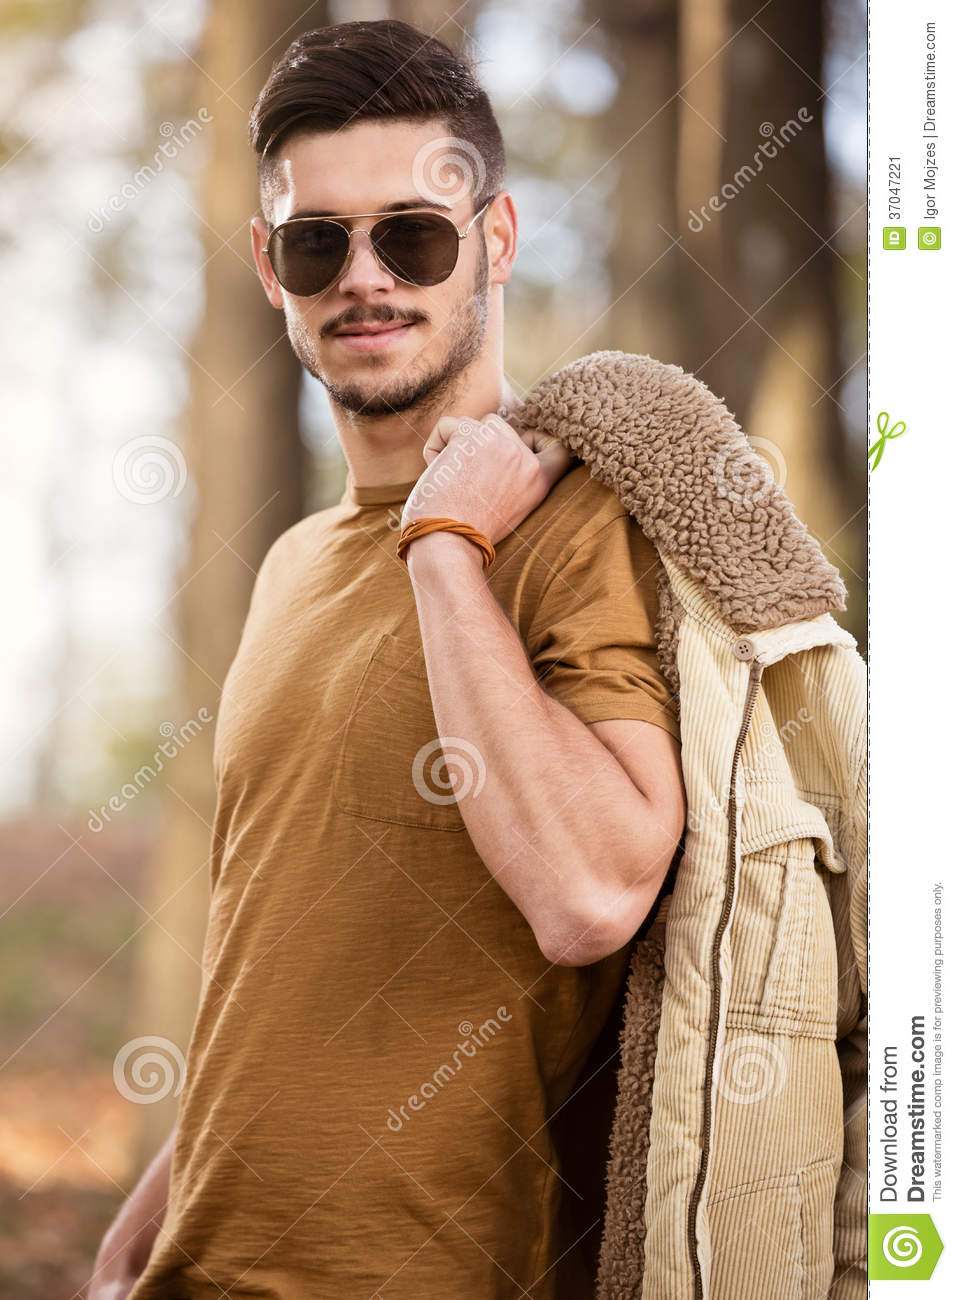 Stock Image: Great looking male model outdoor